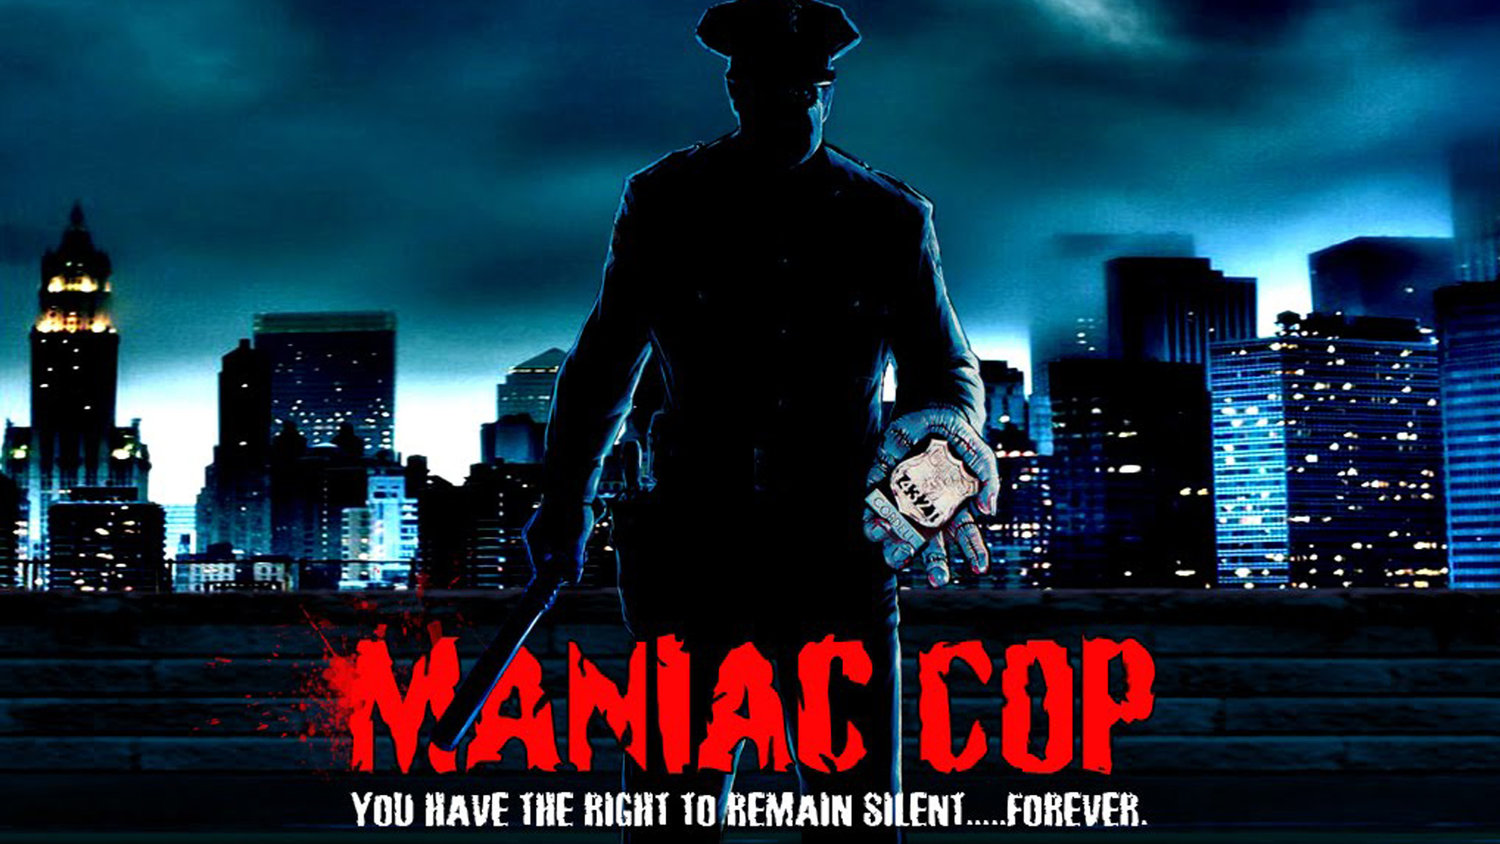 Nicolas Winding Refn's MANIAC COP Remake Is Moving Forward